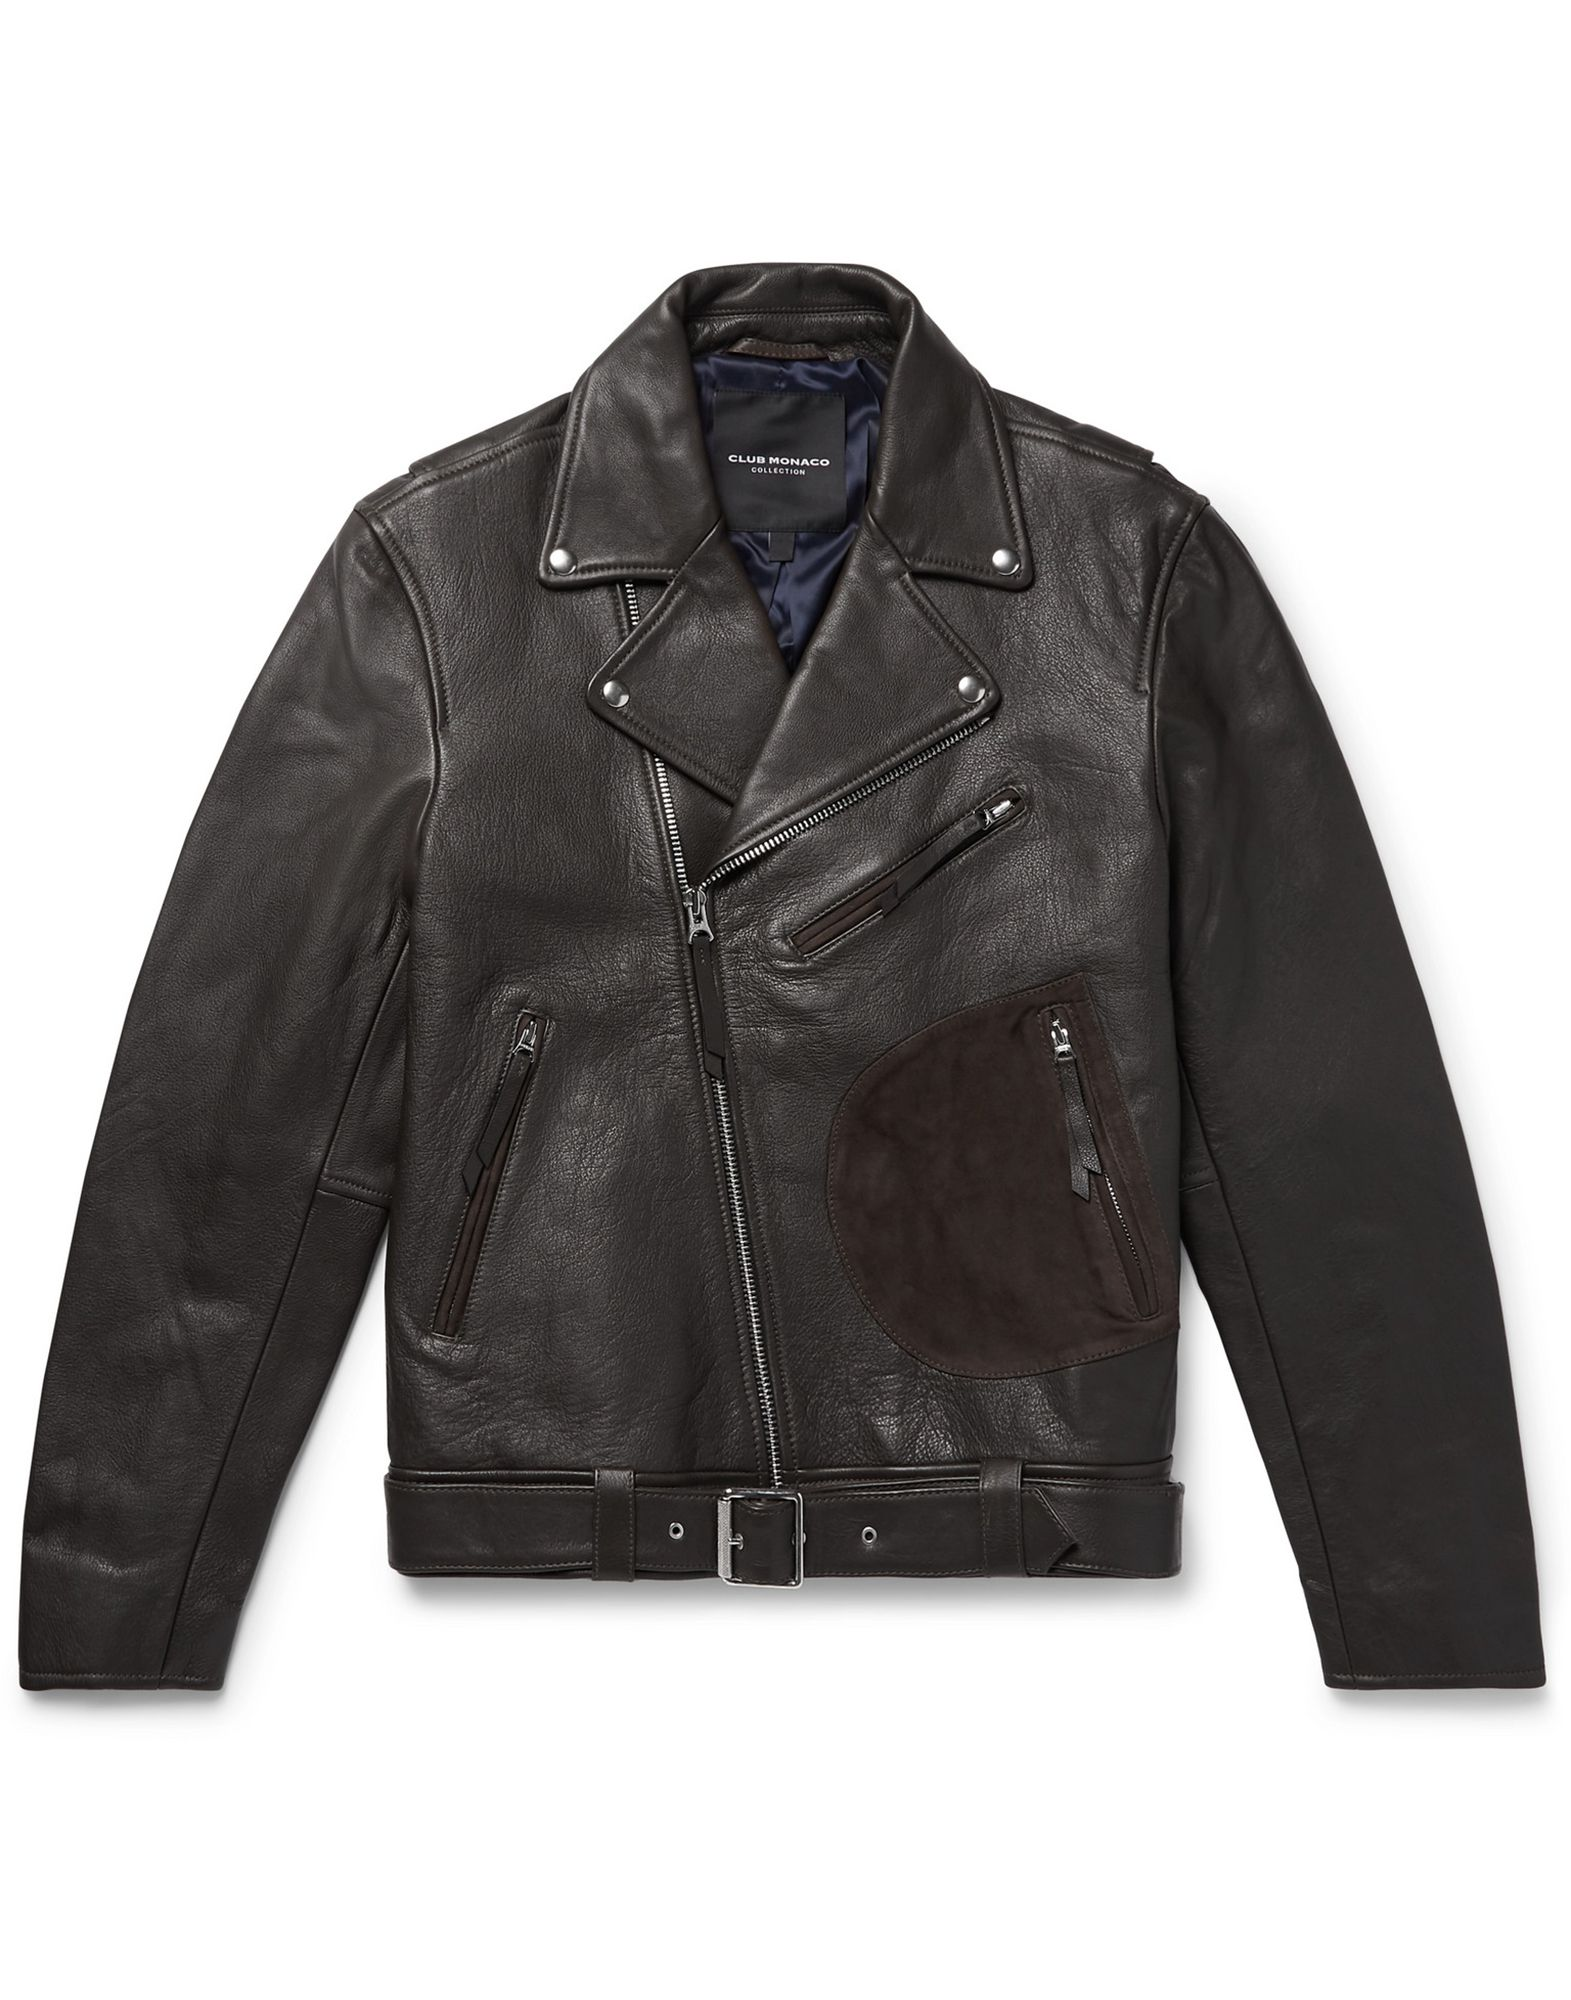 CLUB MONACO Jackets. textured leather, suede effect, belt, basic solid color, single-breasted, zipper closure, lapel collar, multipockets, long sleeves, zipped cuffs, fully lined, contains non-textile parts of animal origin. 100% Bovine leather, Goat skin